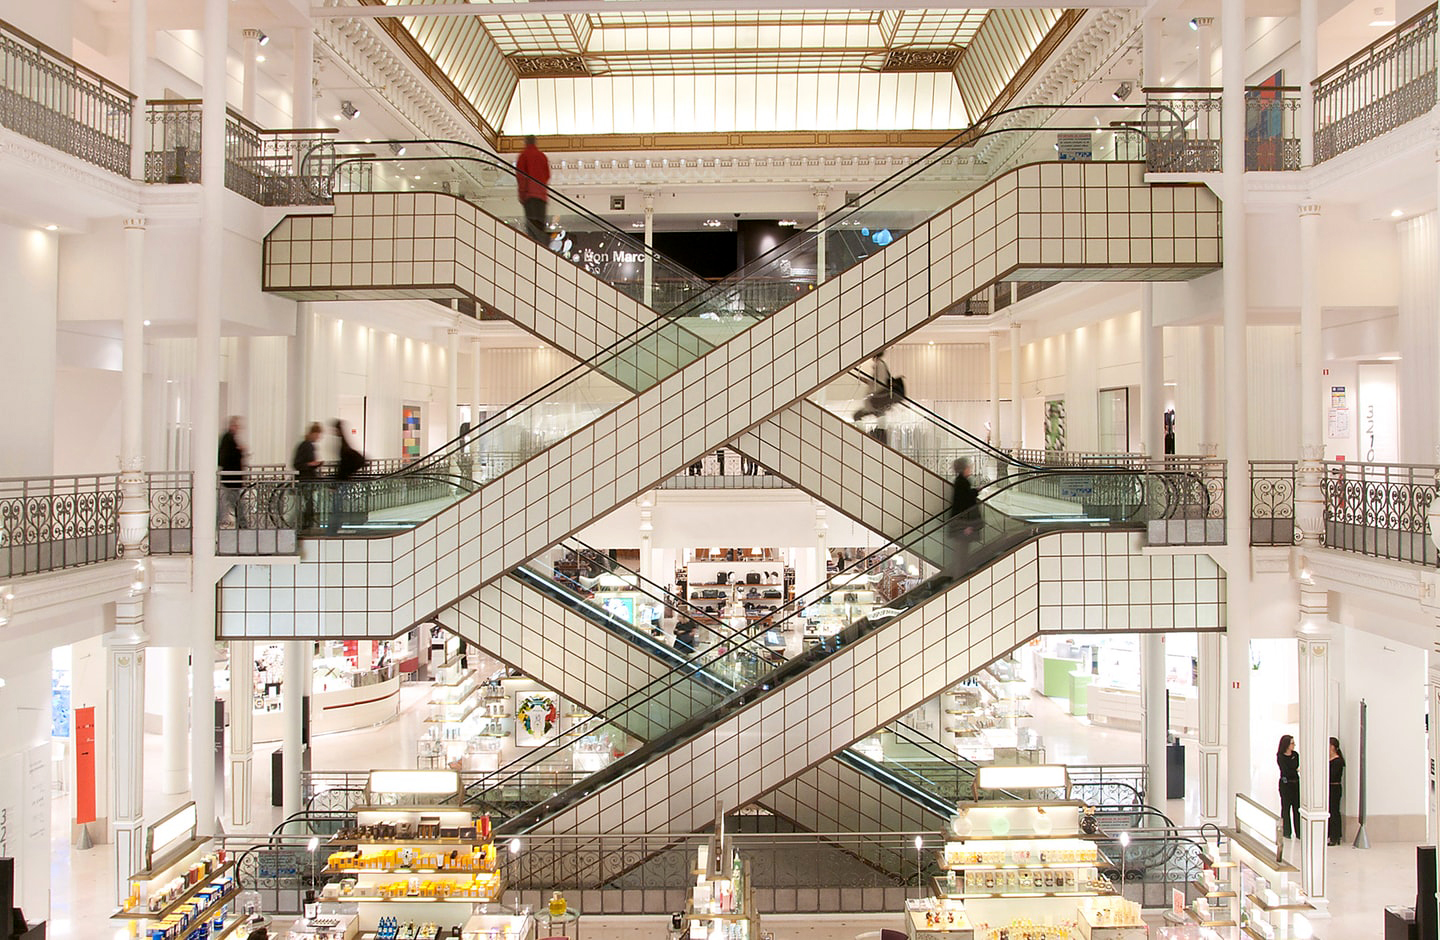 What to Do: Le Bon Marché